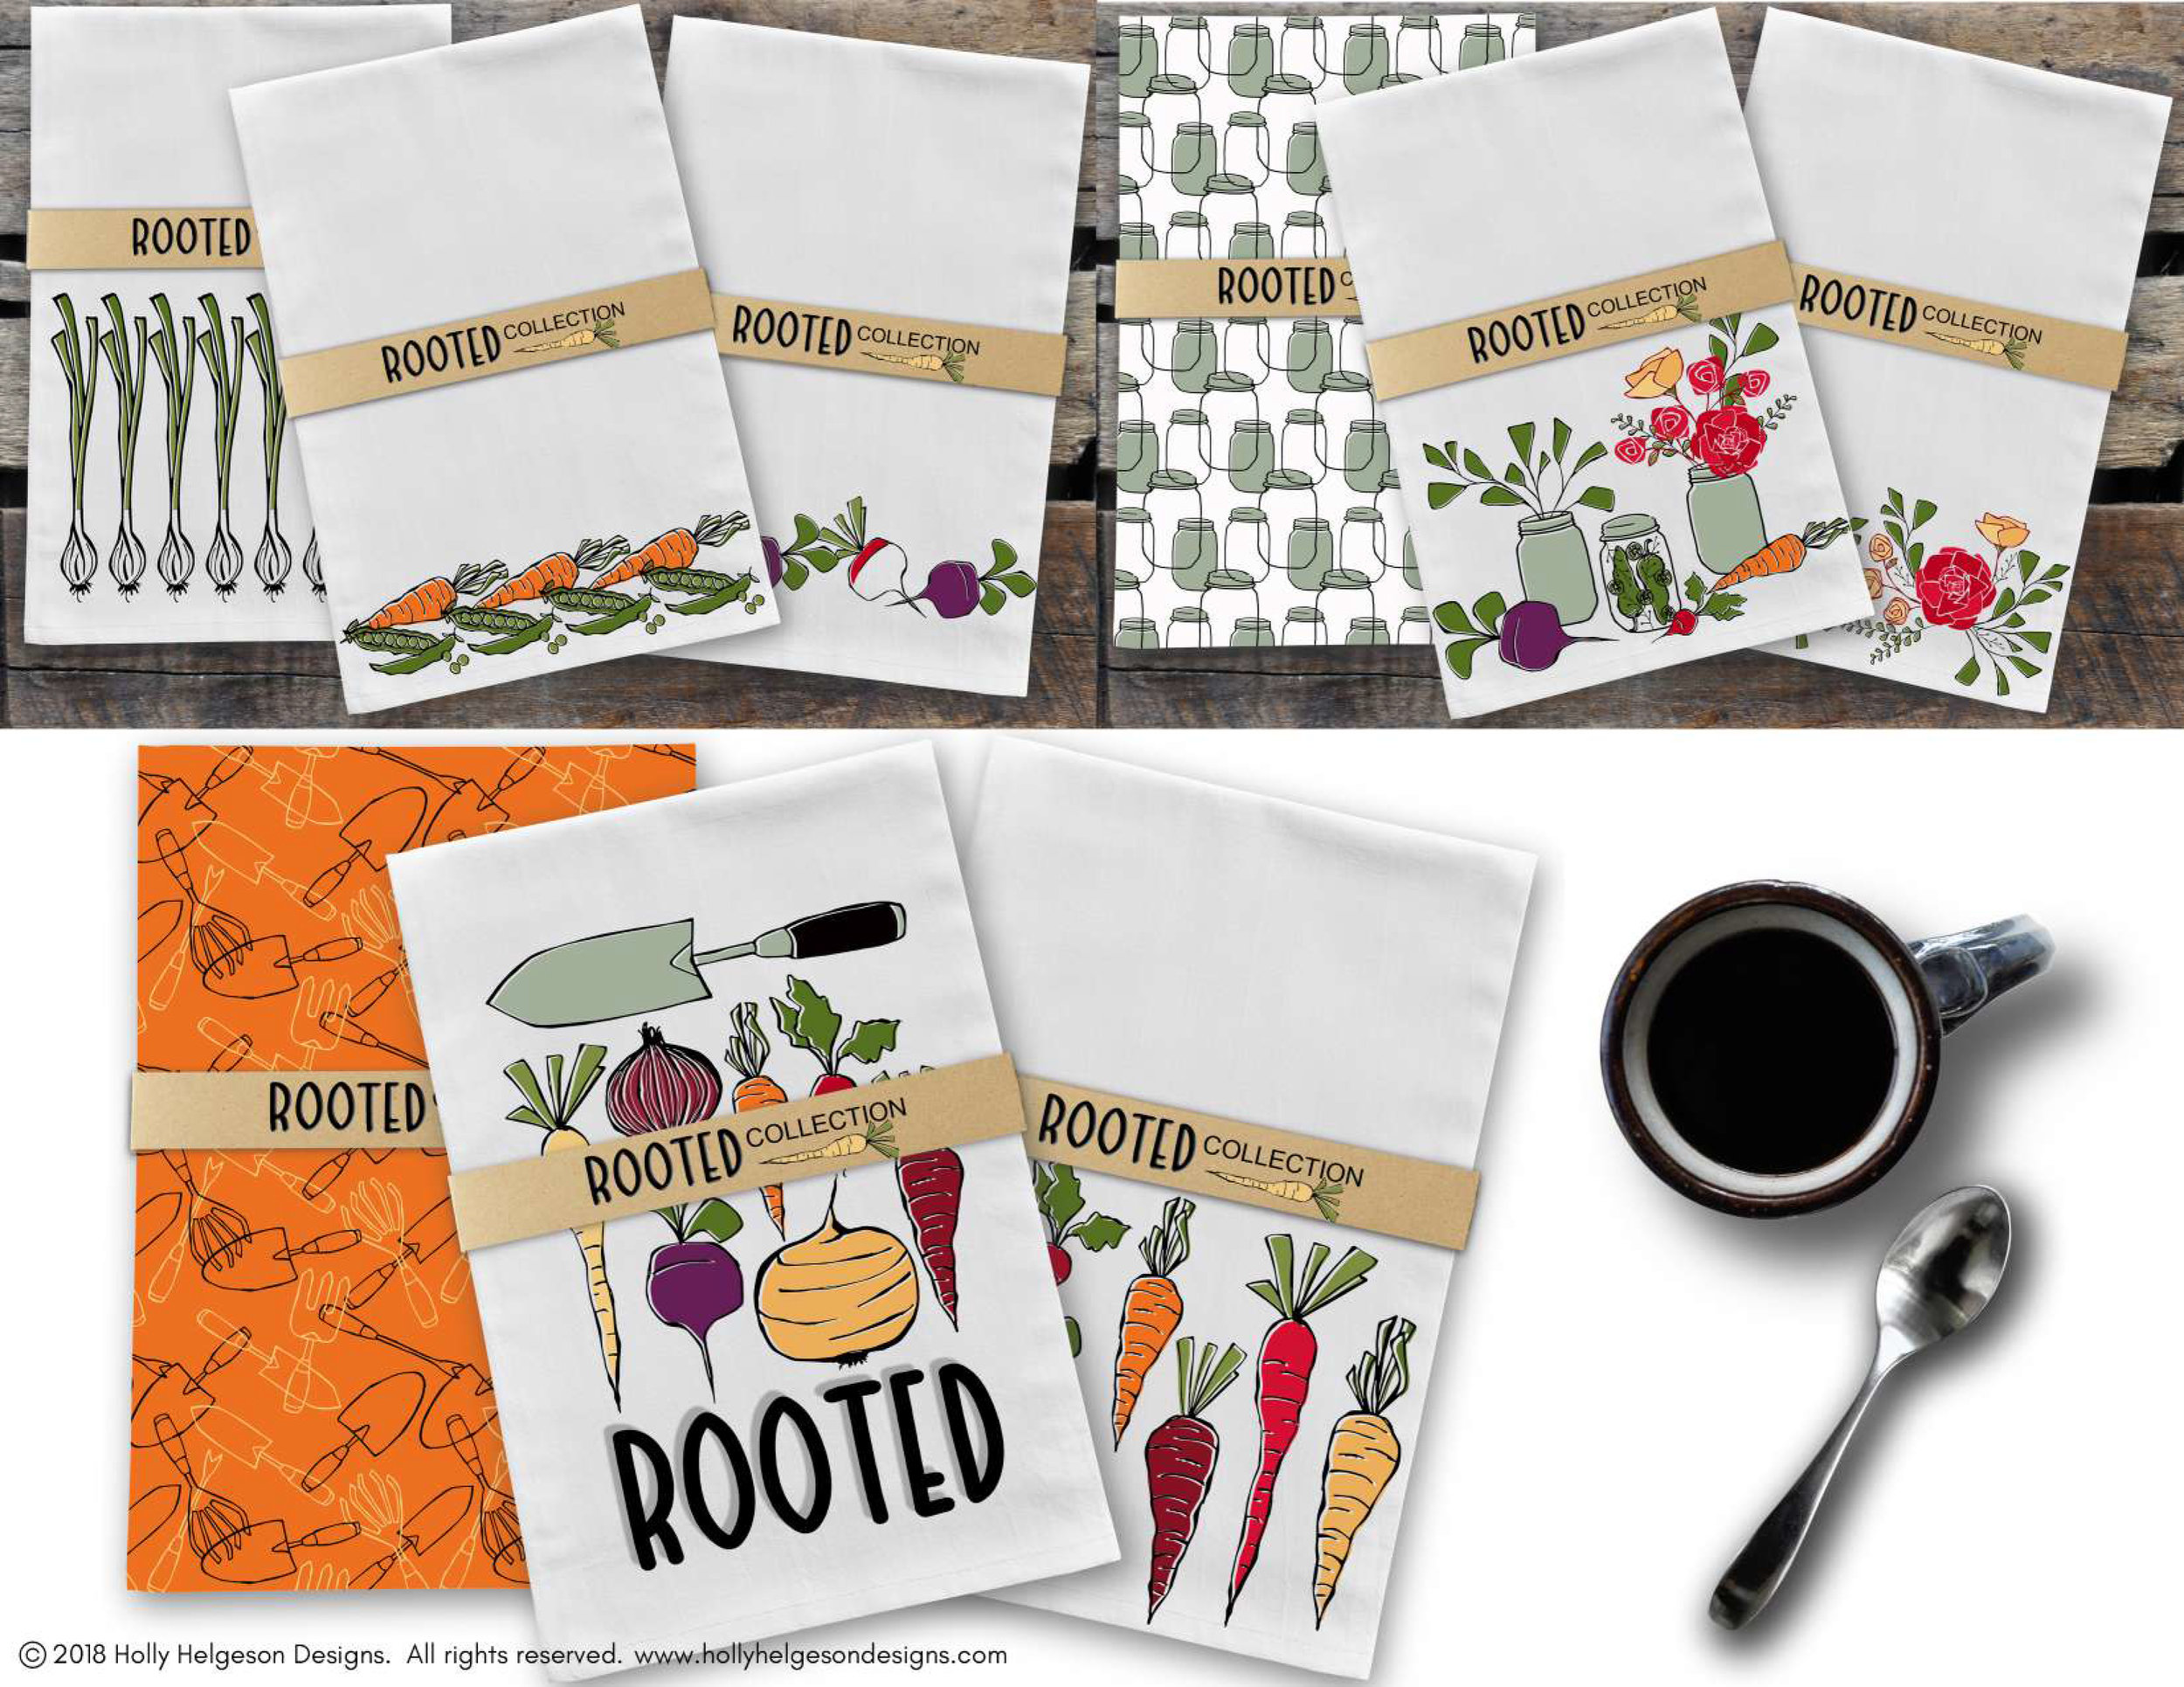 2018 Rooted Collection by Holly Helgeson-10.jpg